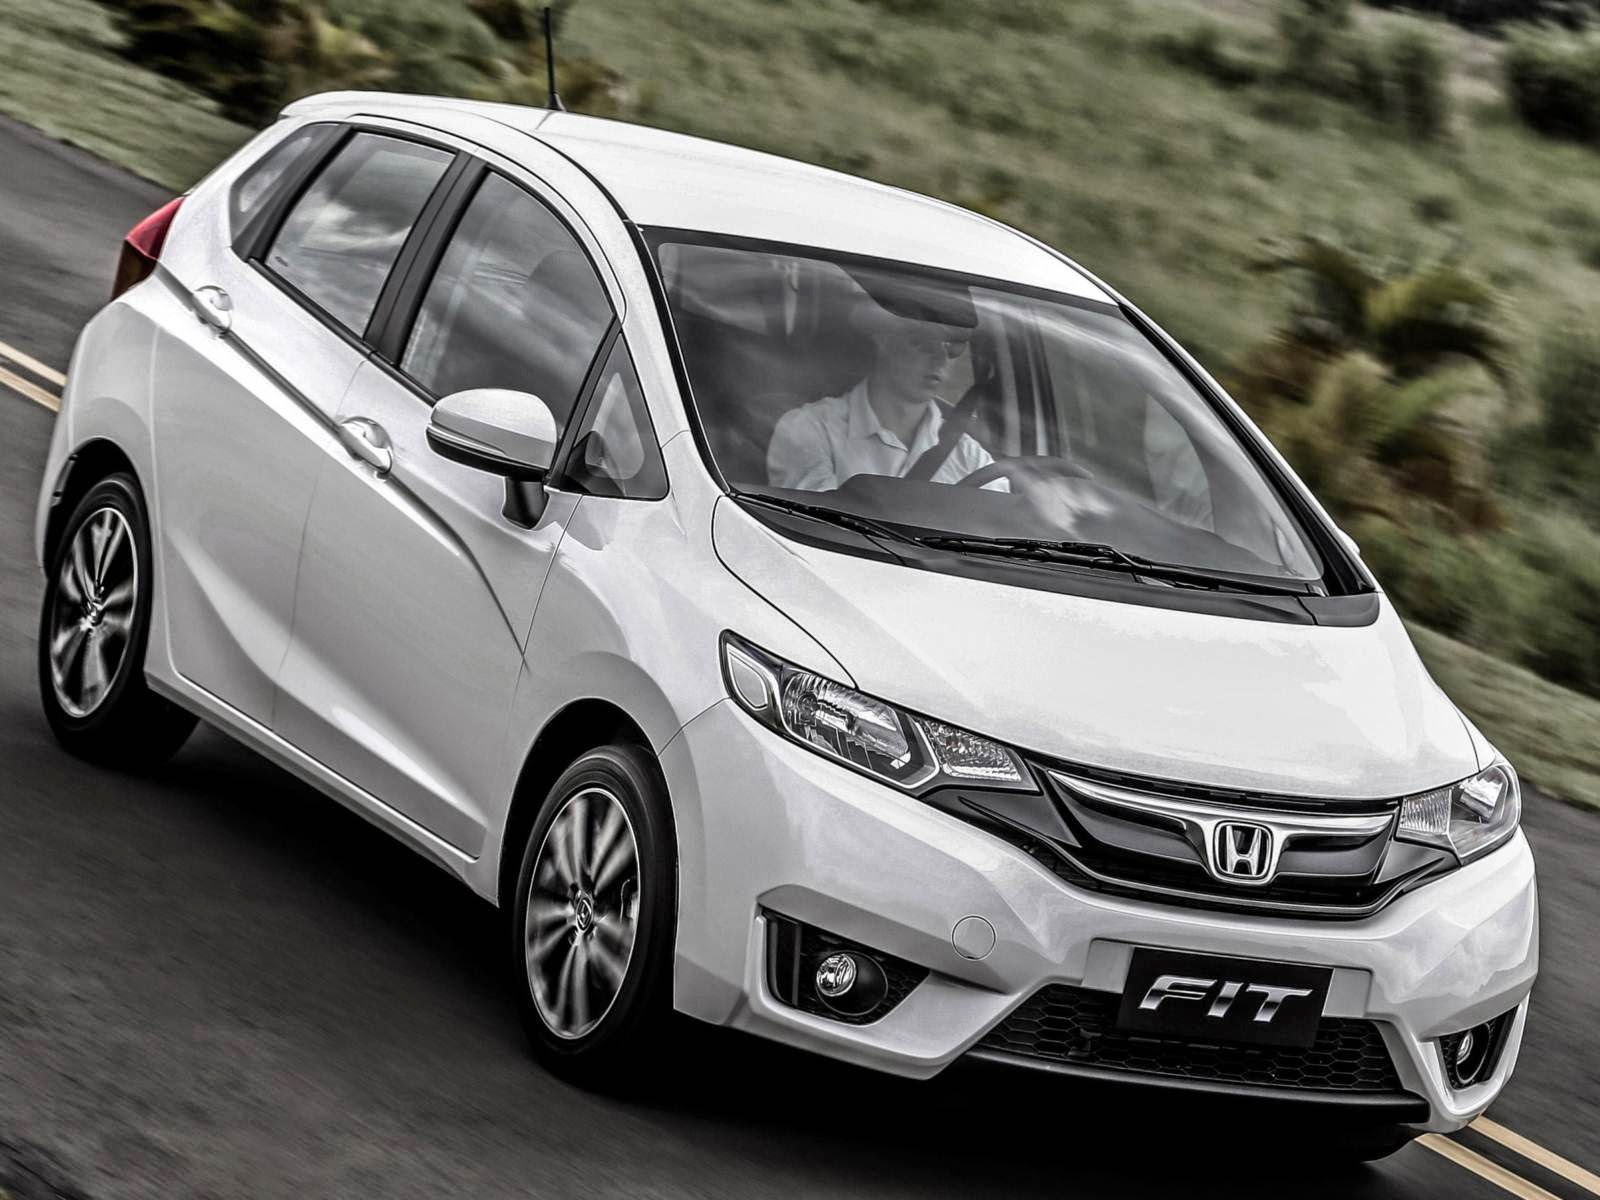 specs honda information ex fit pictures